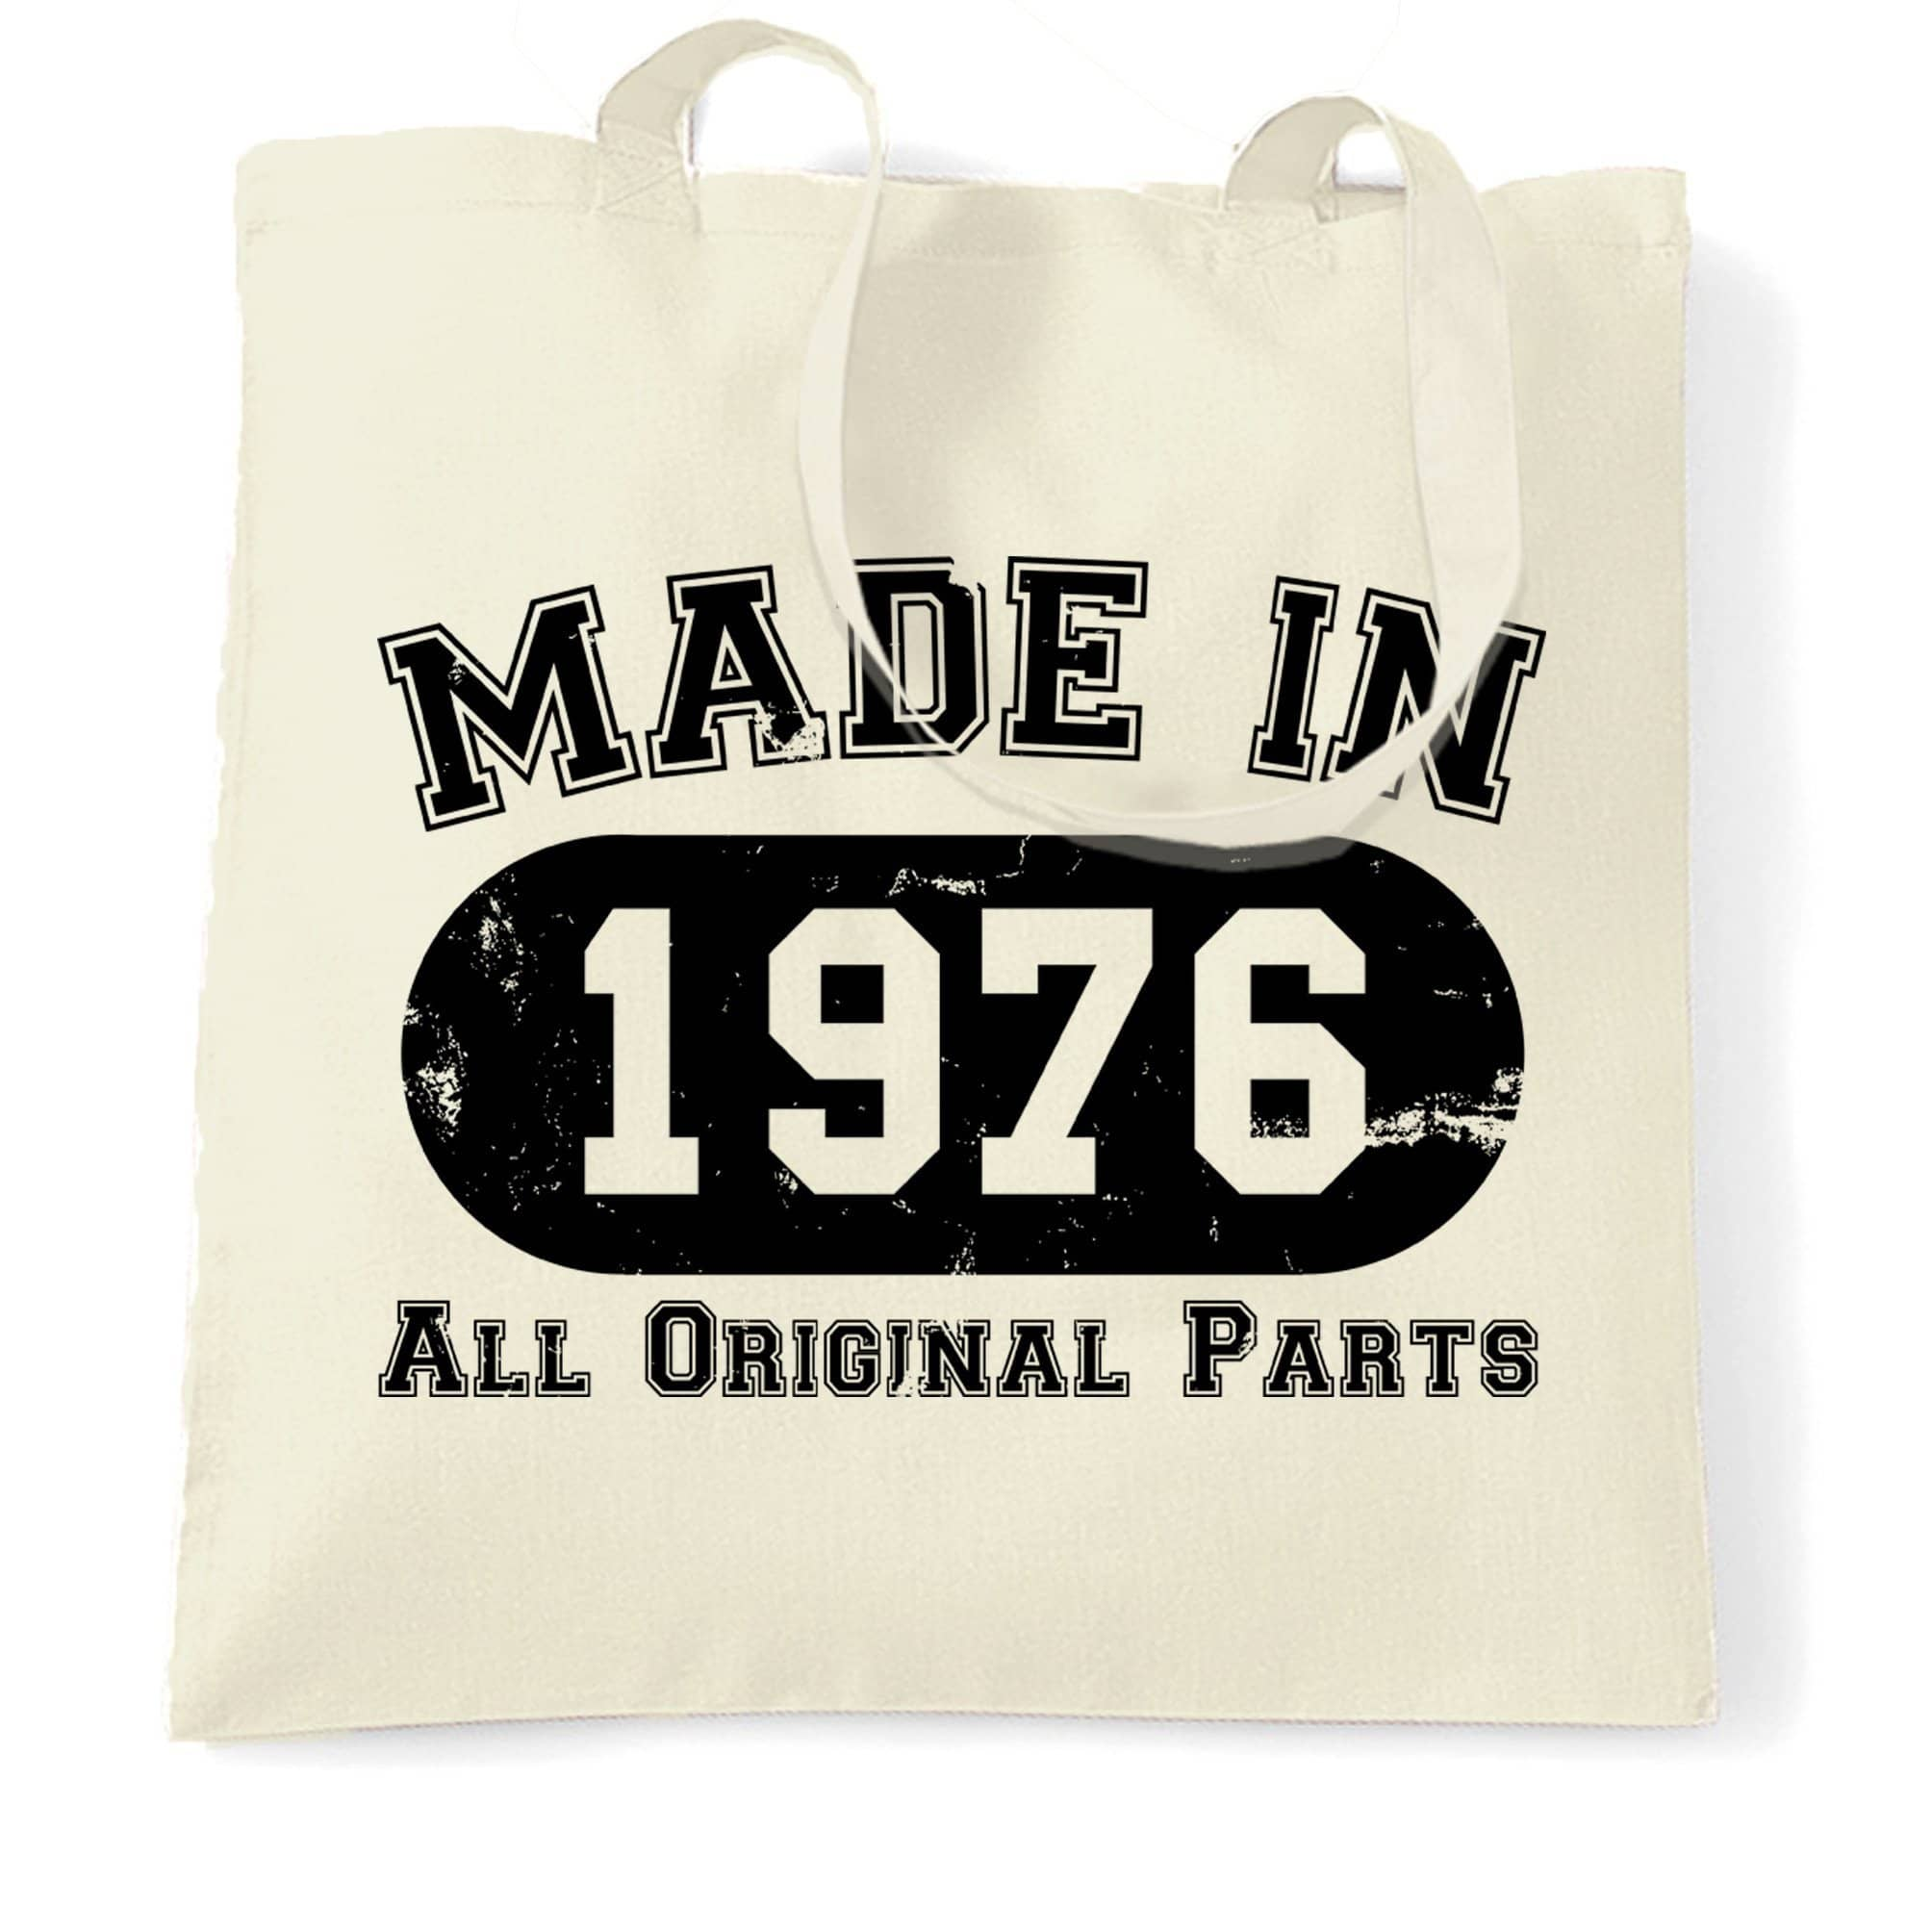 Made in 1976 All Original Parts Tote Bag [Distressed]